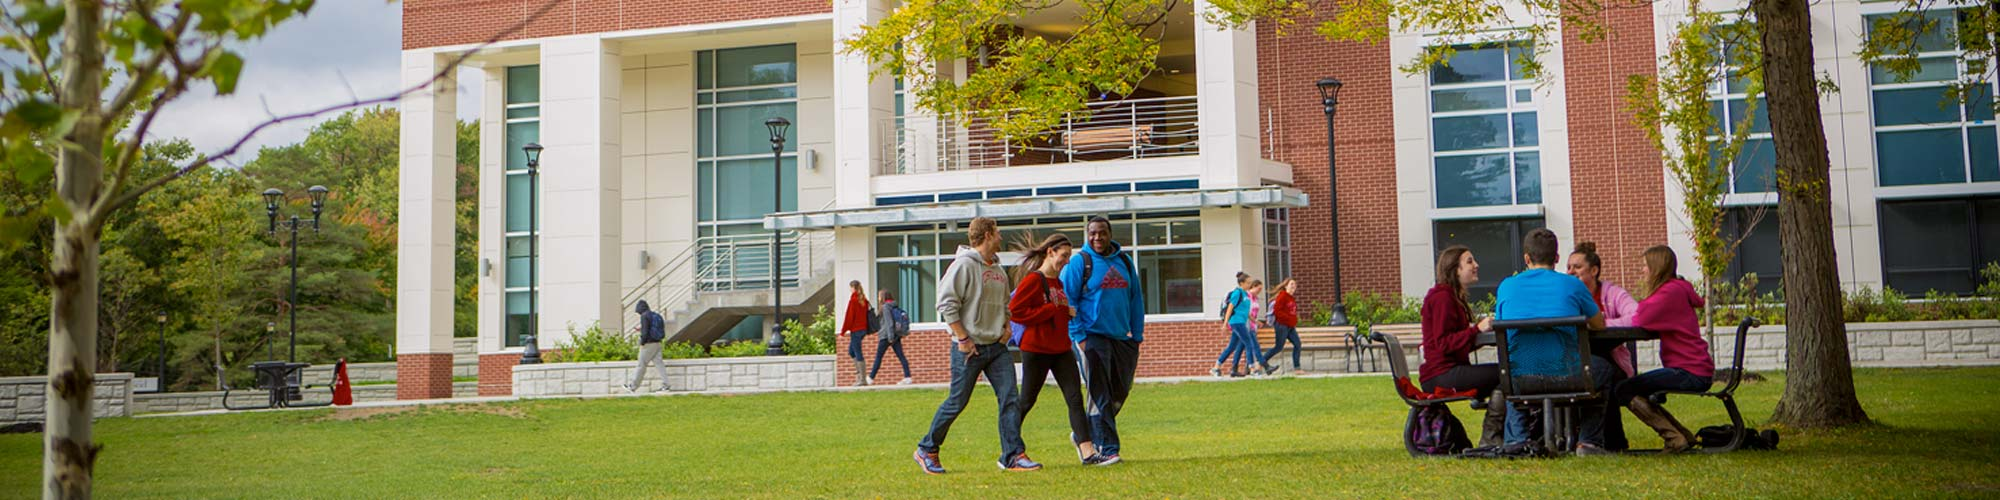 Students on the lawn of Dragon Hall